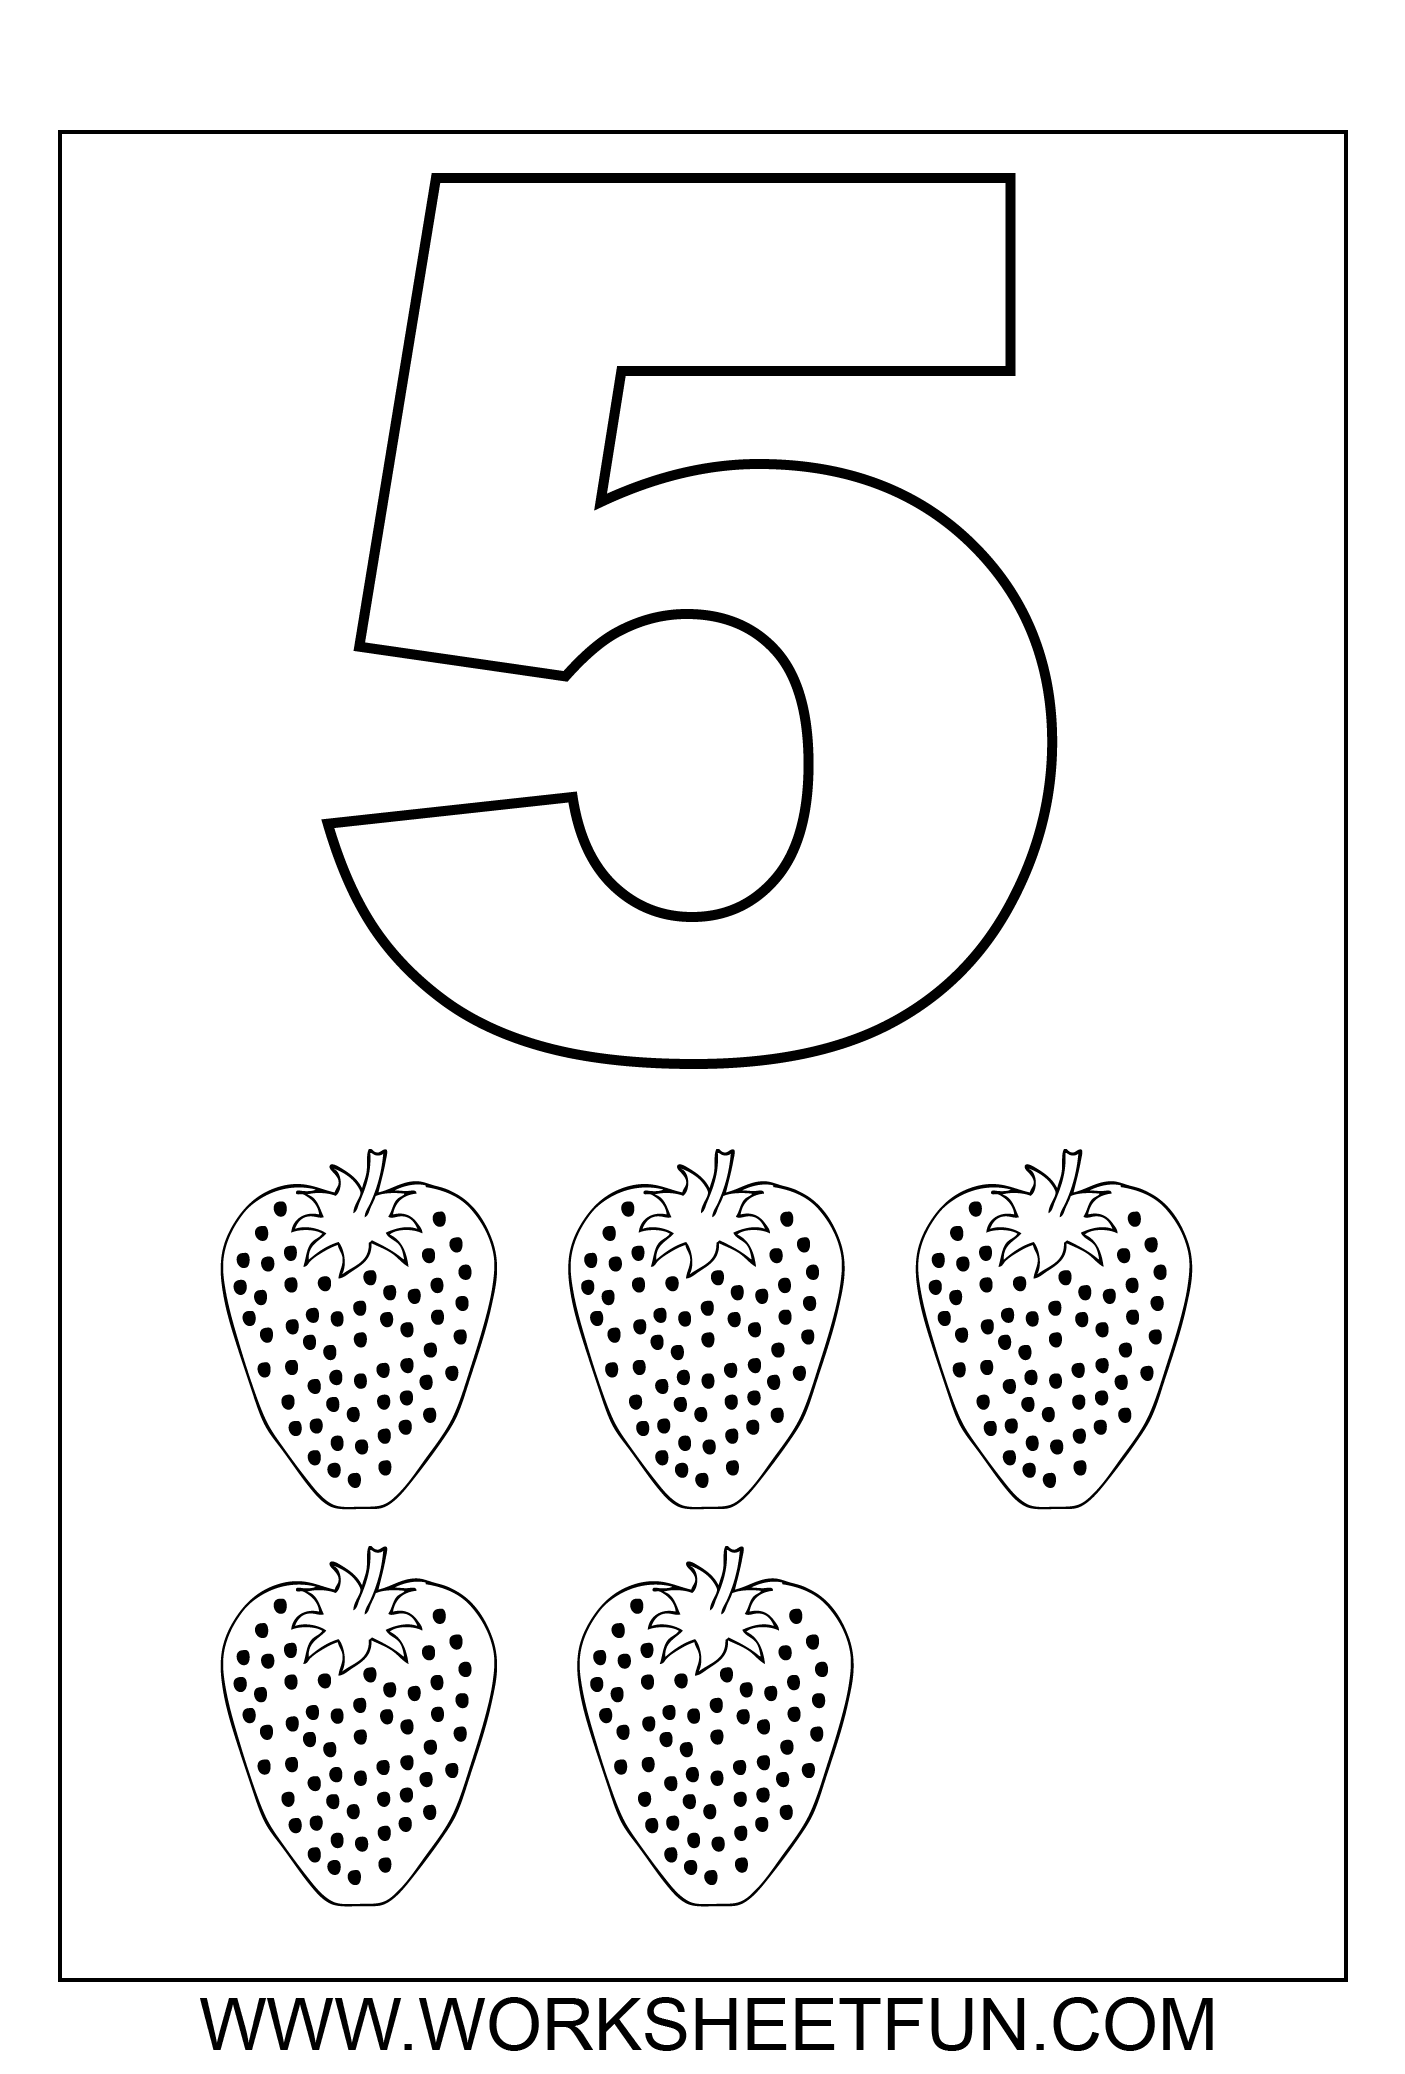 Number Worksheets For Preschool 1 5 Preschooler Development – Numbers 1-5 Worksheets Kindergarten